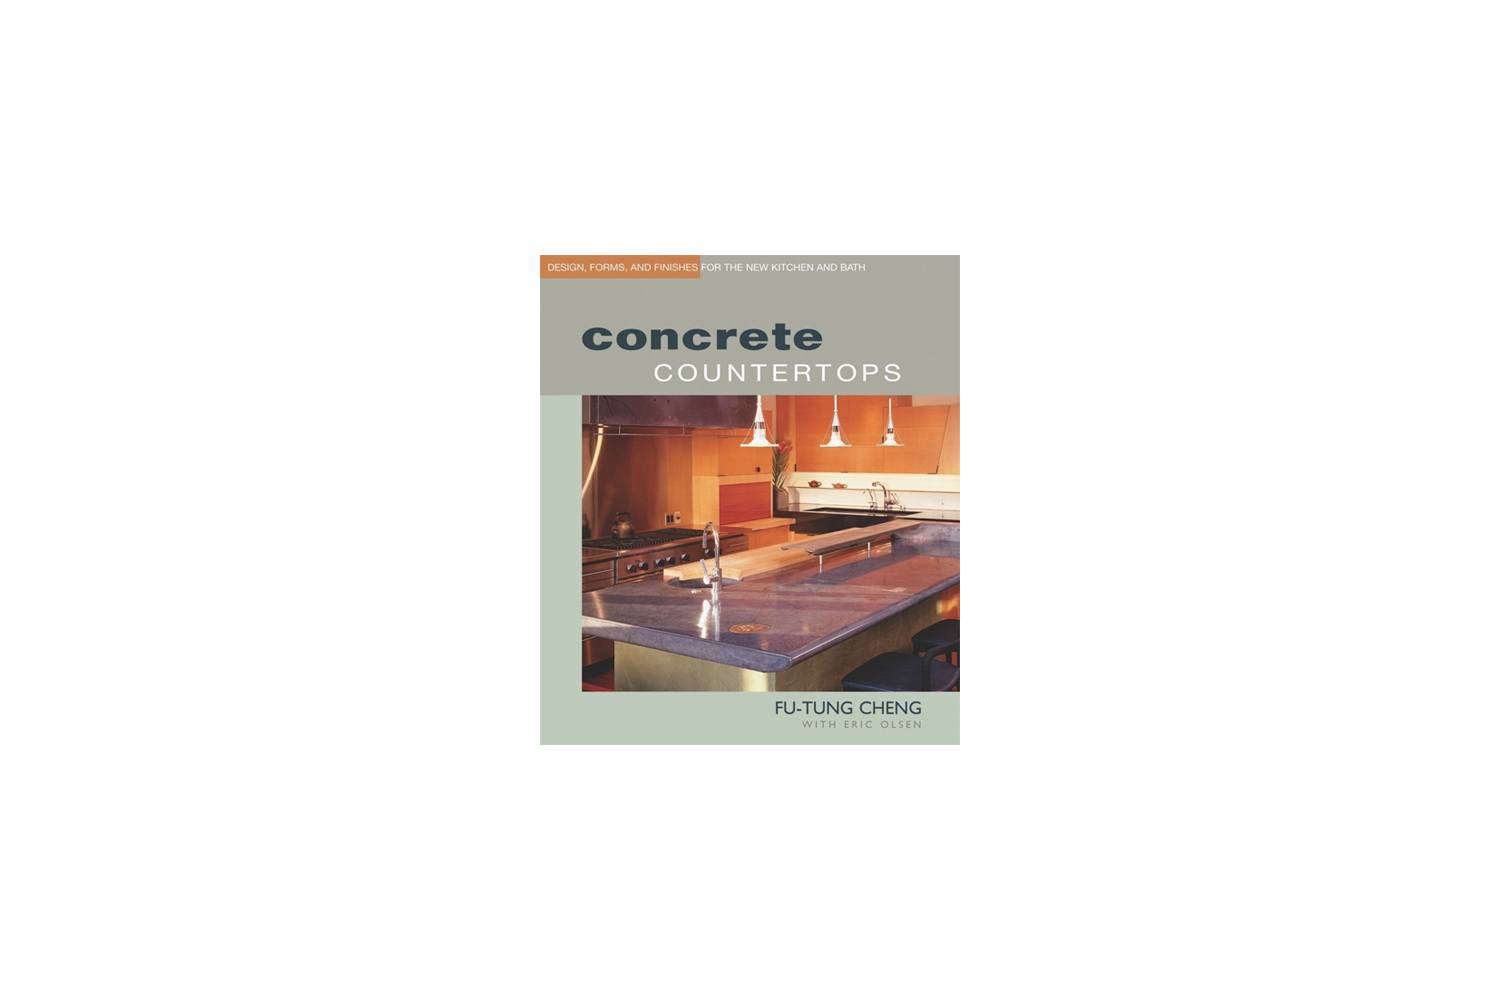 Concrete Countertops Book Concrete Countertops Design Forms And Finishes For The New